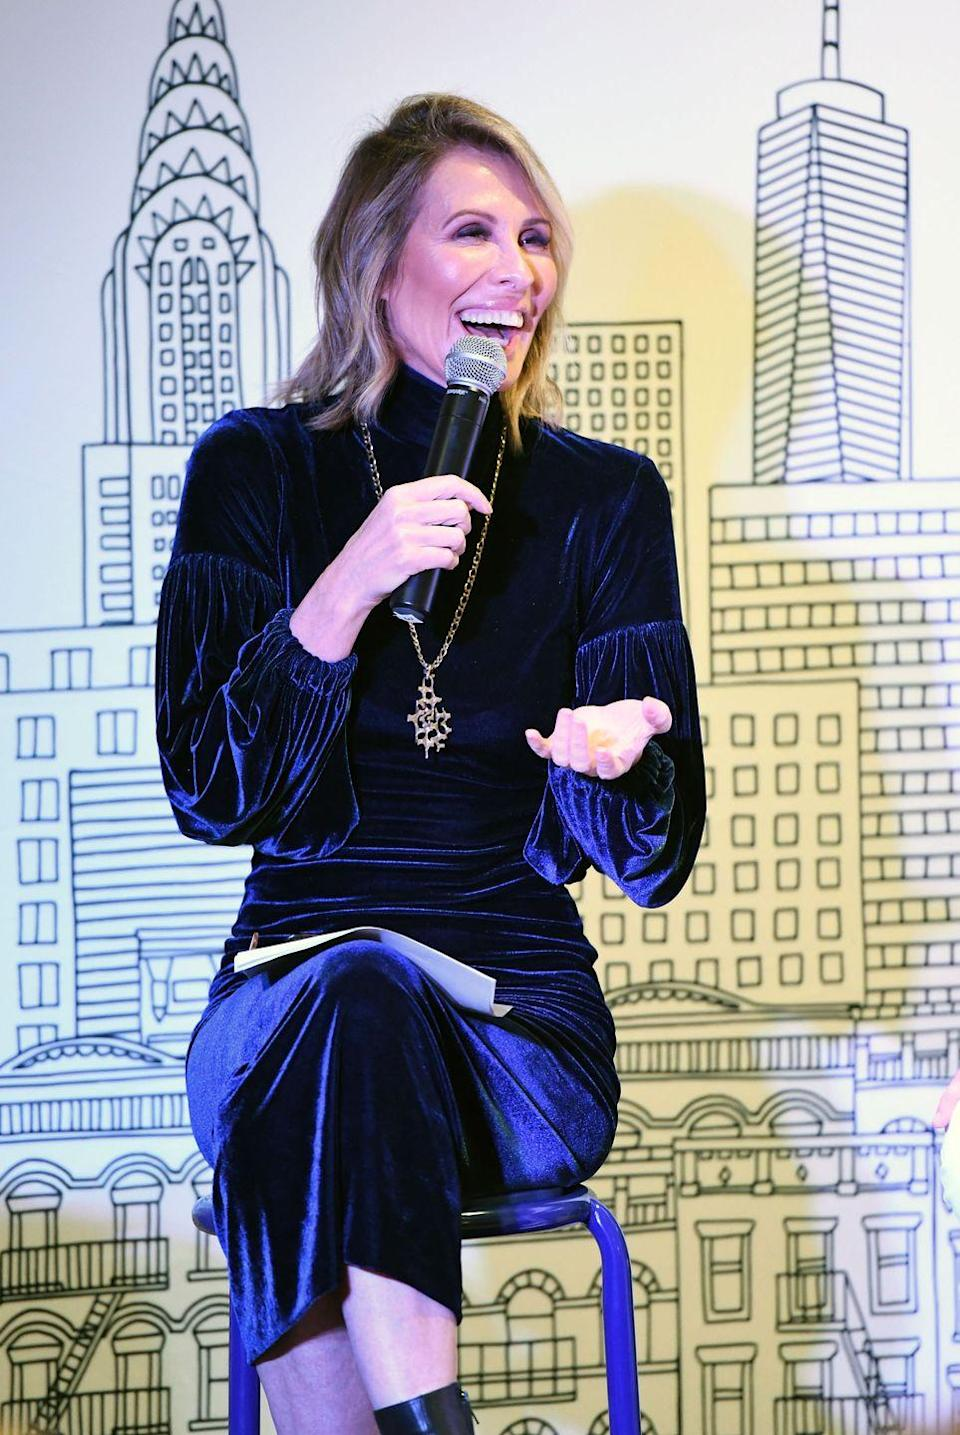 <p>Carole Radziwill left the <em>Real Housewives of New York City</em> in 2018 after six years of holding an apple. Carole's exit was shrouded in drama and anxiety amidst her lengthy, confusing feud with castmate and ex-best friend Bethenny Frankel. The former ABC News correspondent, however, claims that her decision to leave the show had less to do with on-screen drama and more to do with her desire to pursue other projects closer to her journalism background.</p>